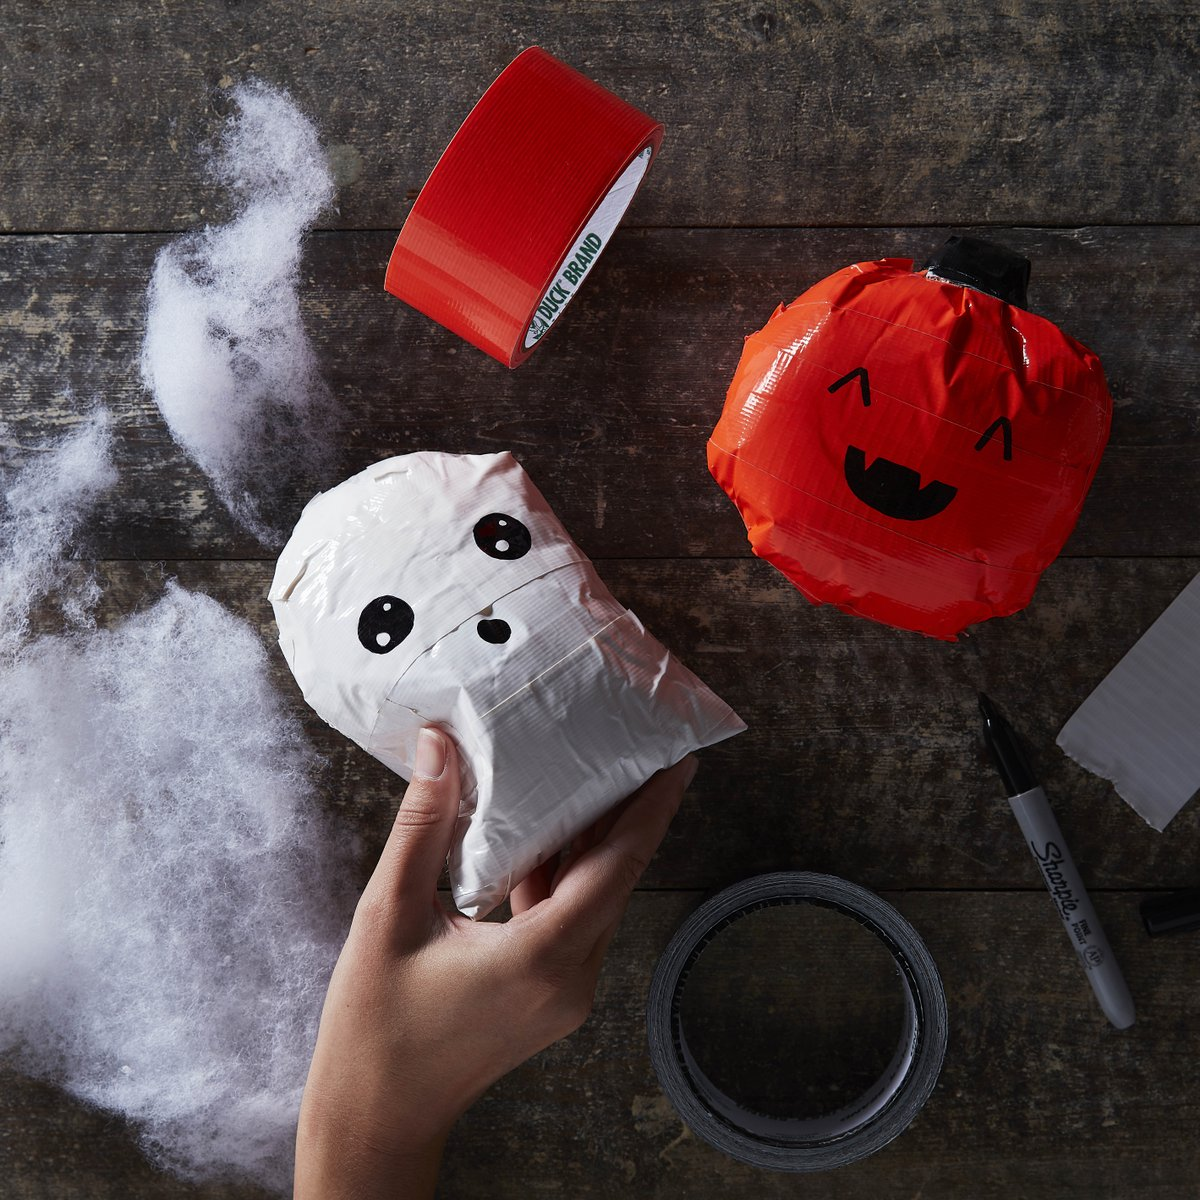 Squishies are so much fun to play with! Why not try to make your own Halloween designs using Soft Toy Stuffing and Duck Tape?   Follow our tutorial: https://t.co/csXvfg7W5z  #Halloween #KidsCrafts #Hobbycraft https://t.co/j67bwKP6nH